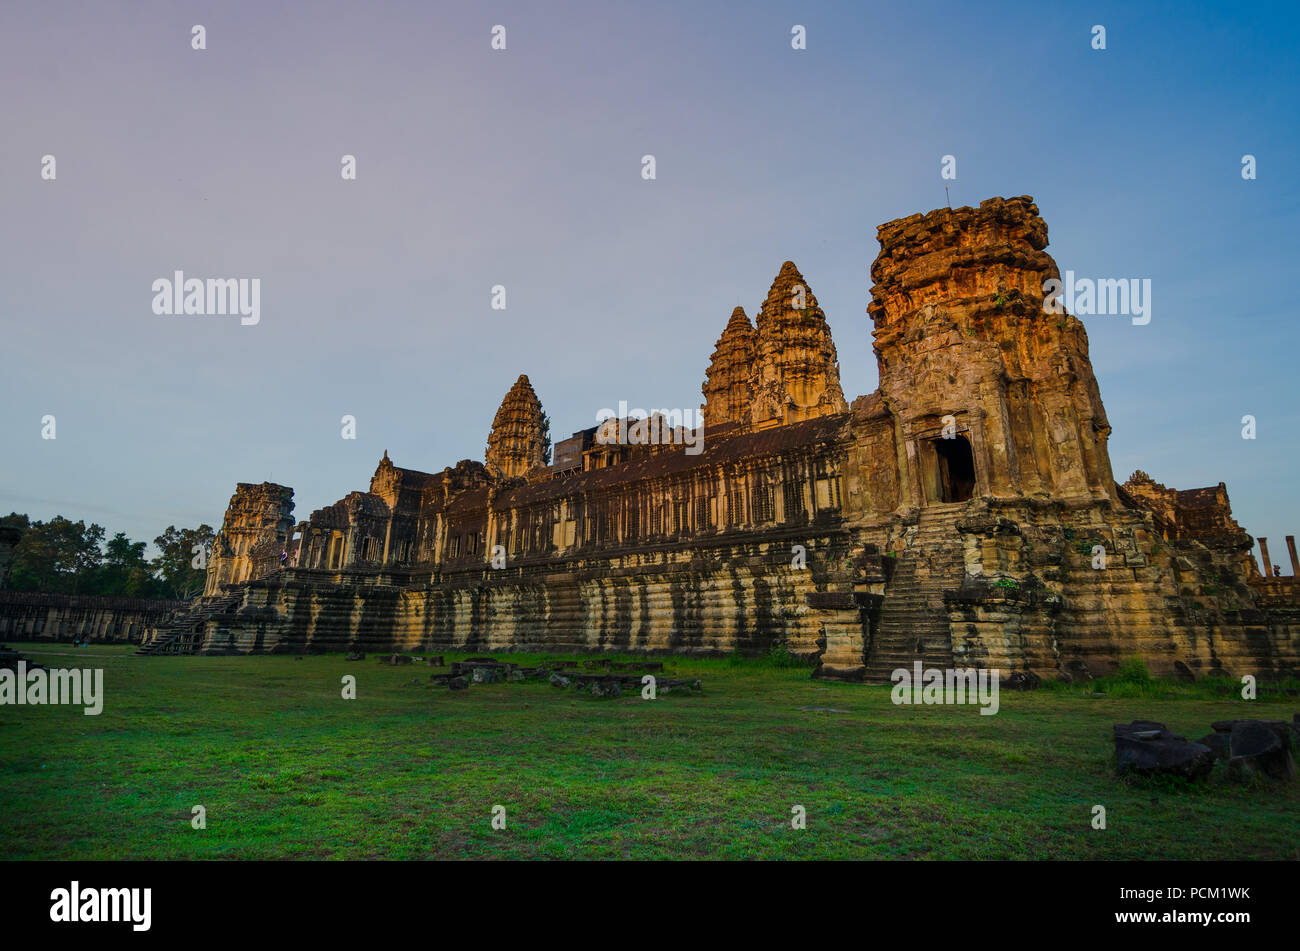 Angkor Wat temple, from western face, at sunrise. Siem Reap, Cambodia. Stock Photo